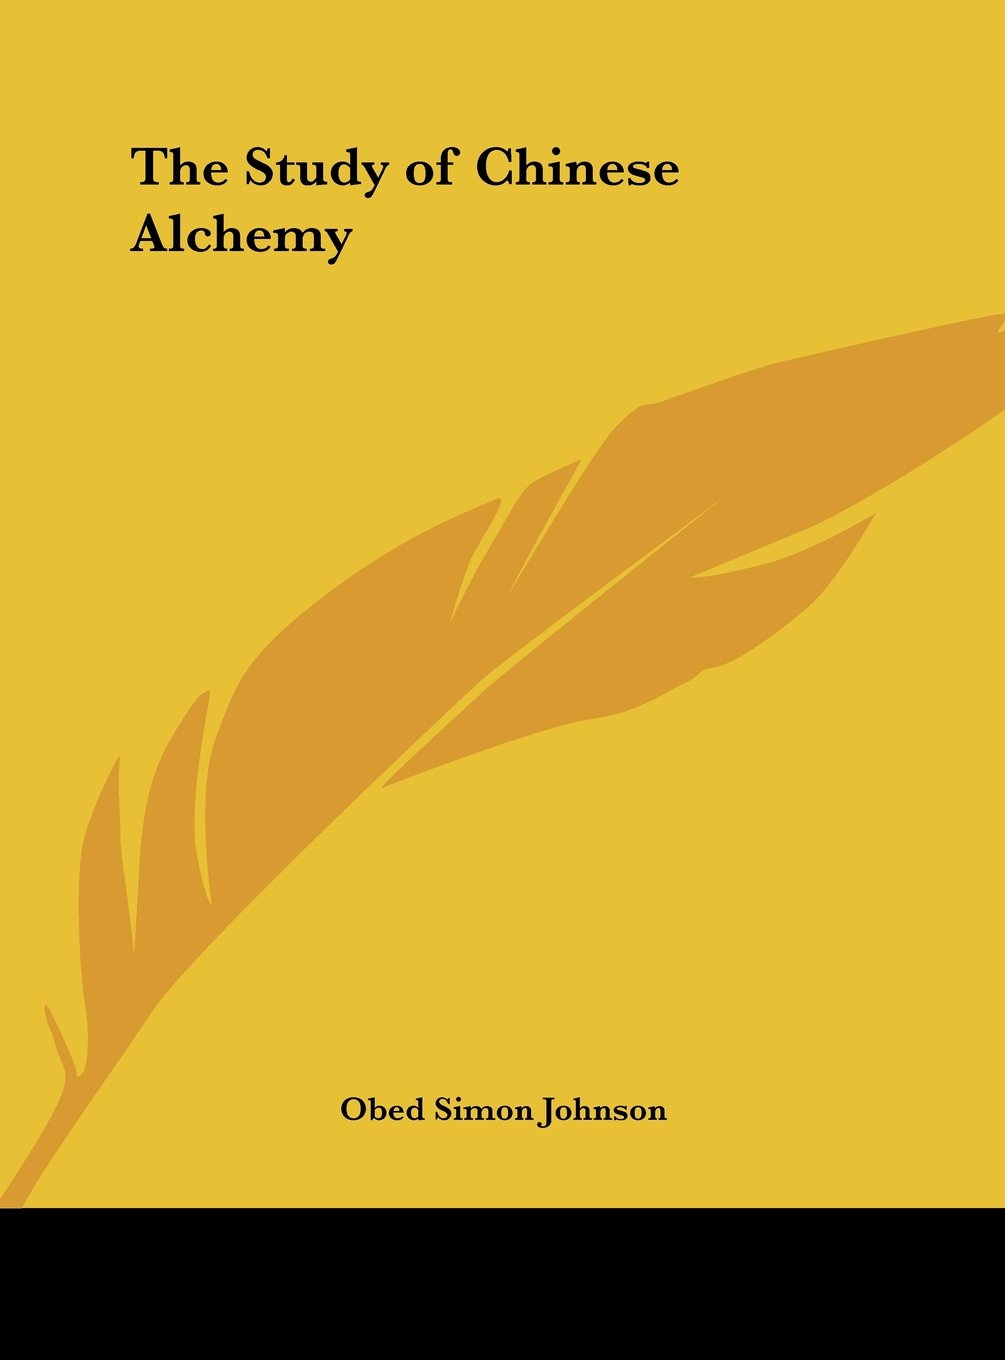 The Study of Chinese Alchemy pdf